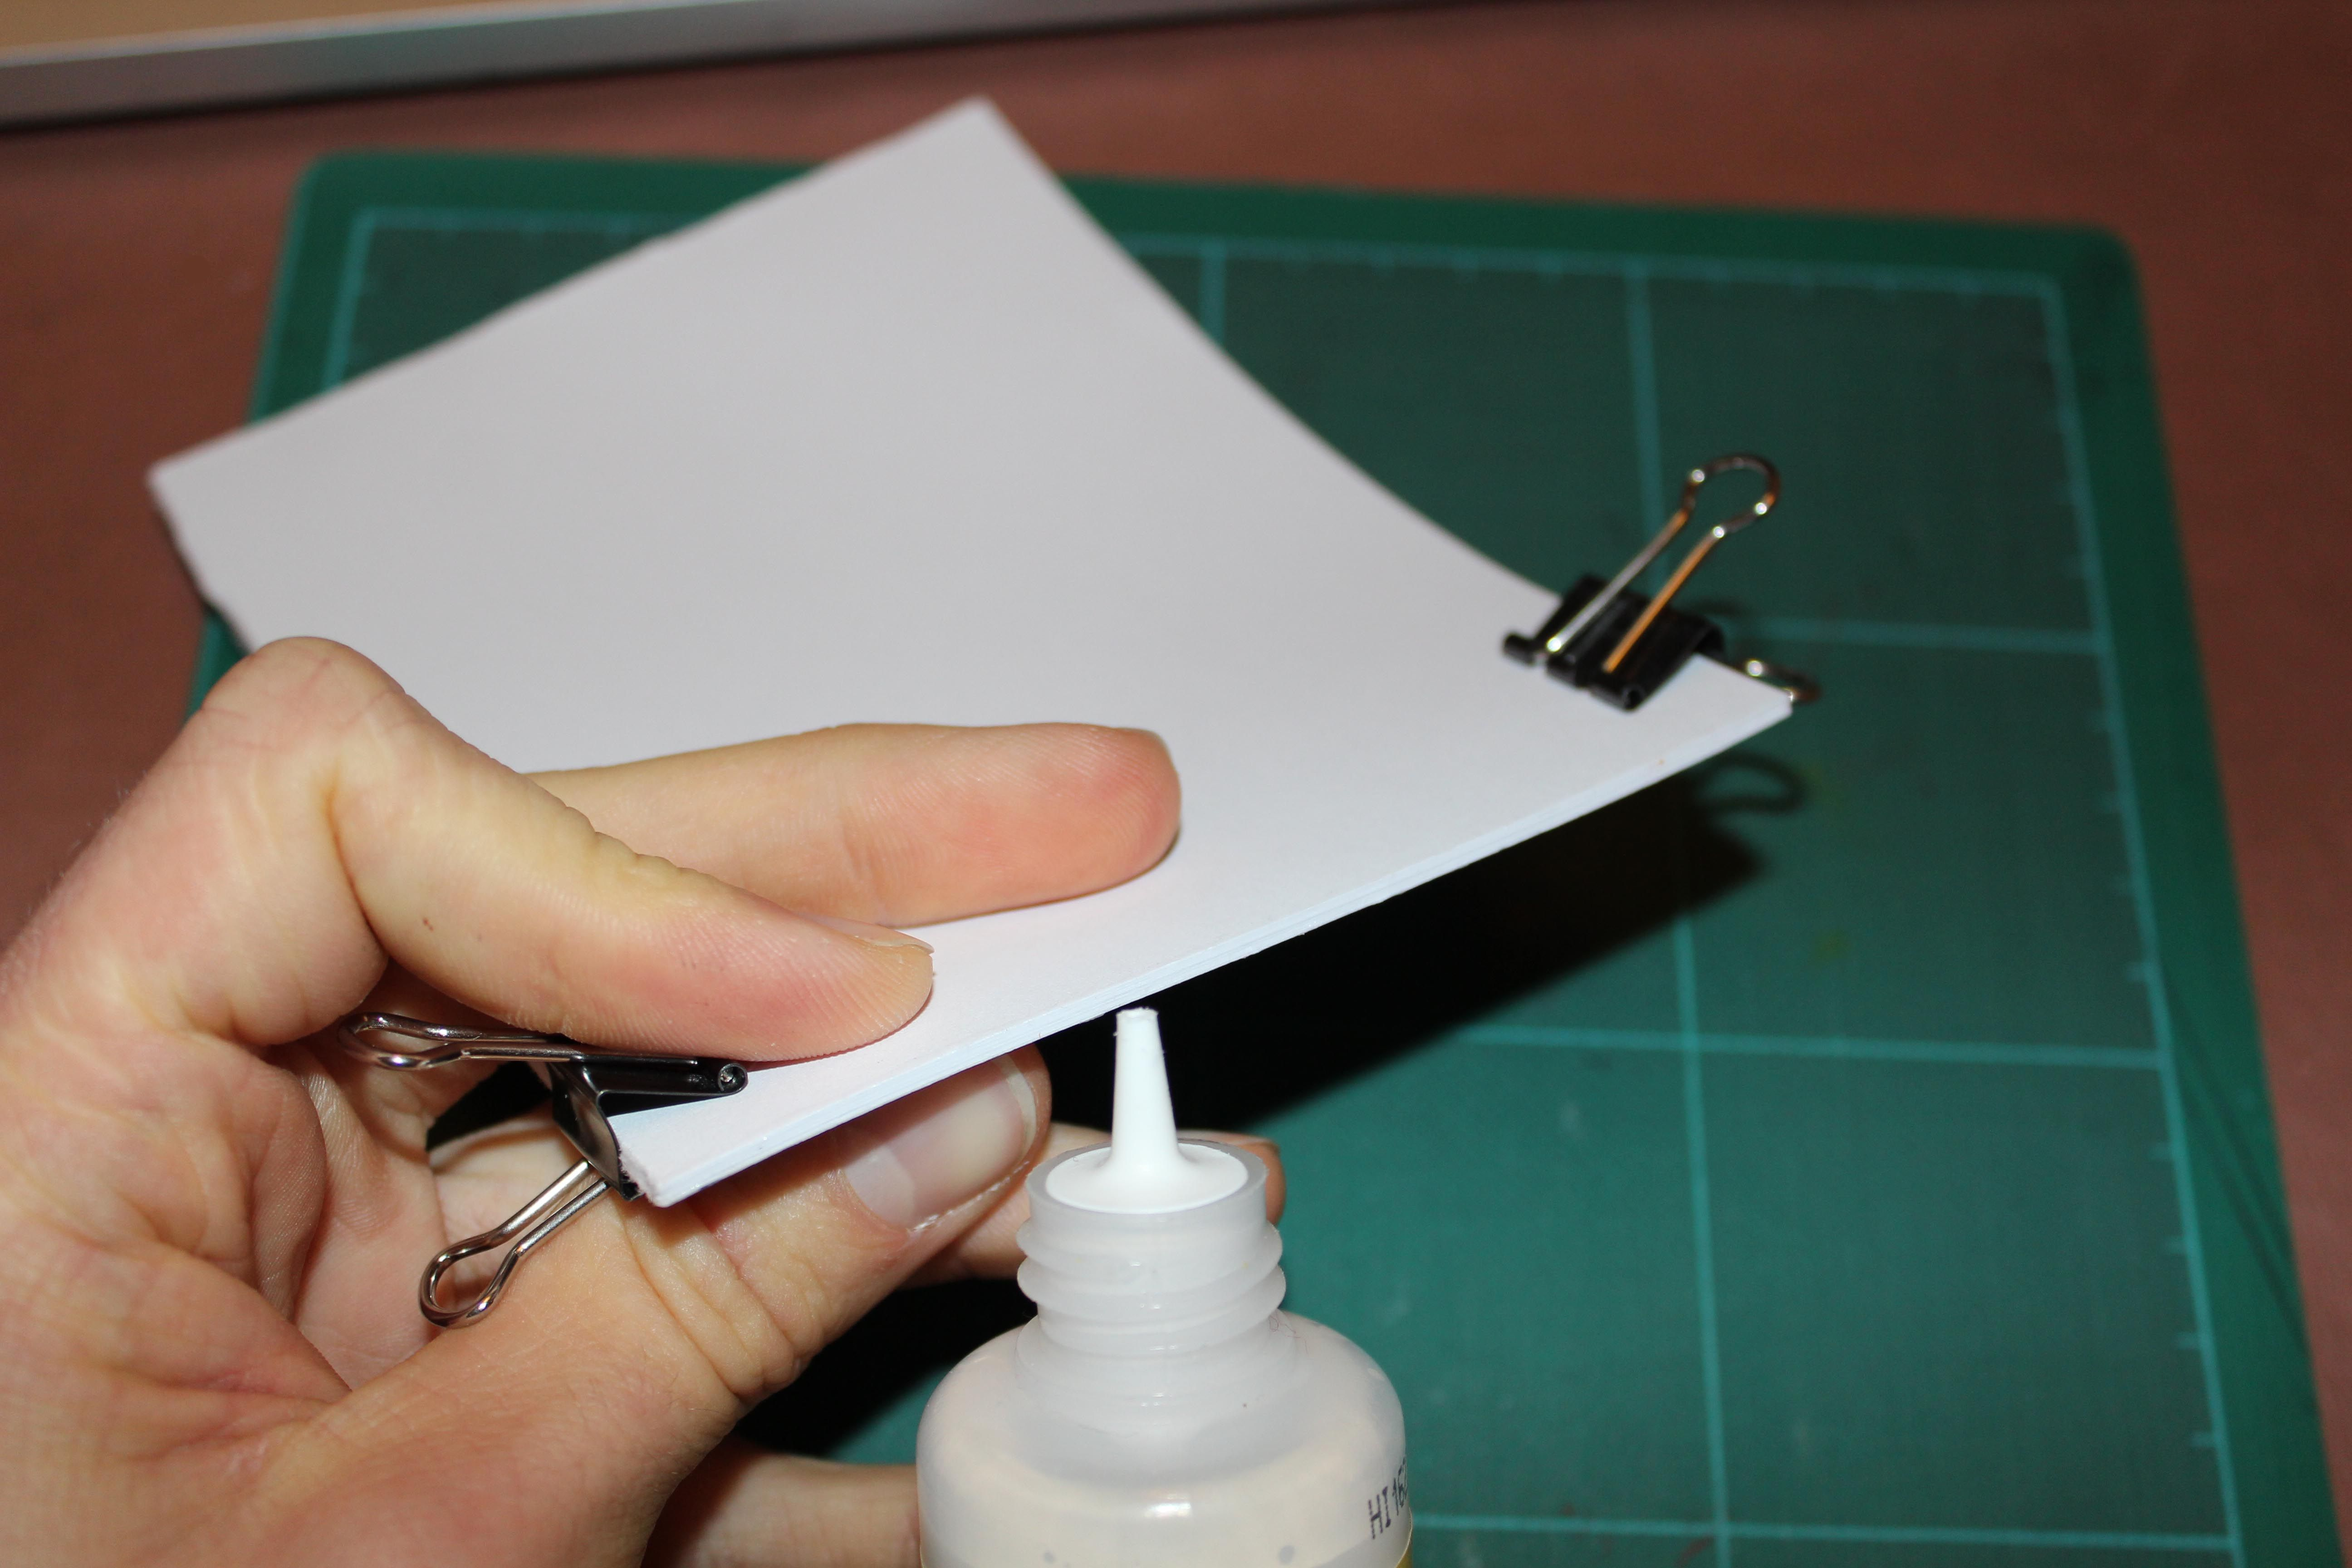 I have created a small mock up that tested the perfect binding method. Using PVA brushed along one edge gave a strong bind to the pages and a neat overall finish. I will definitely use this method of binding to construct my final artifact.